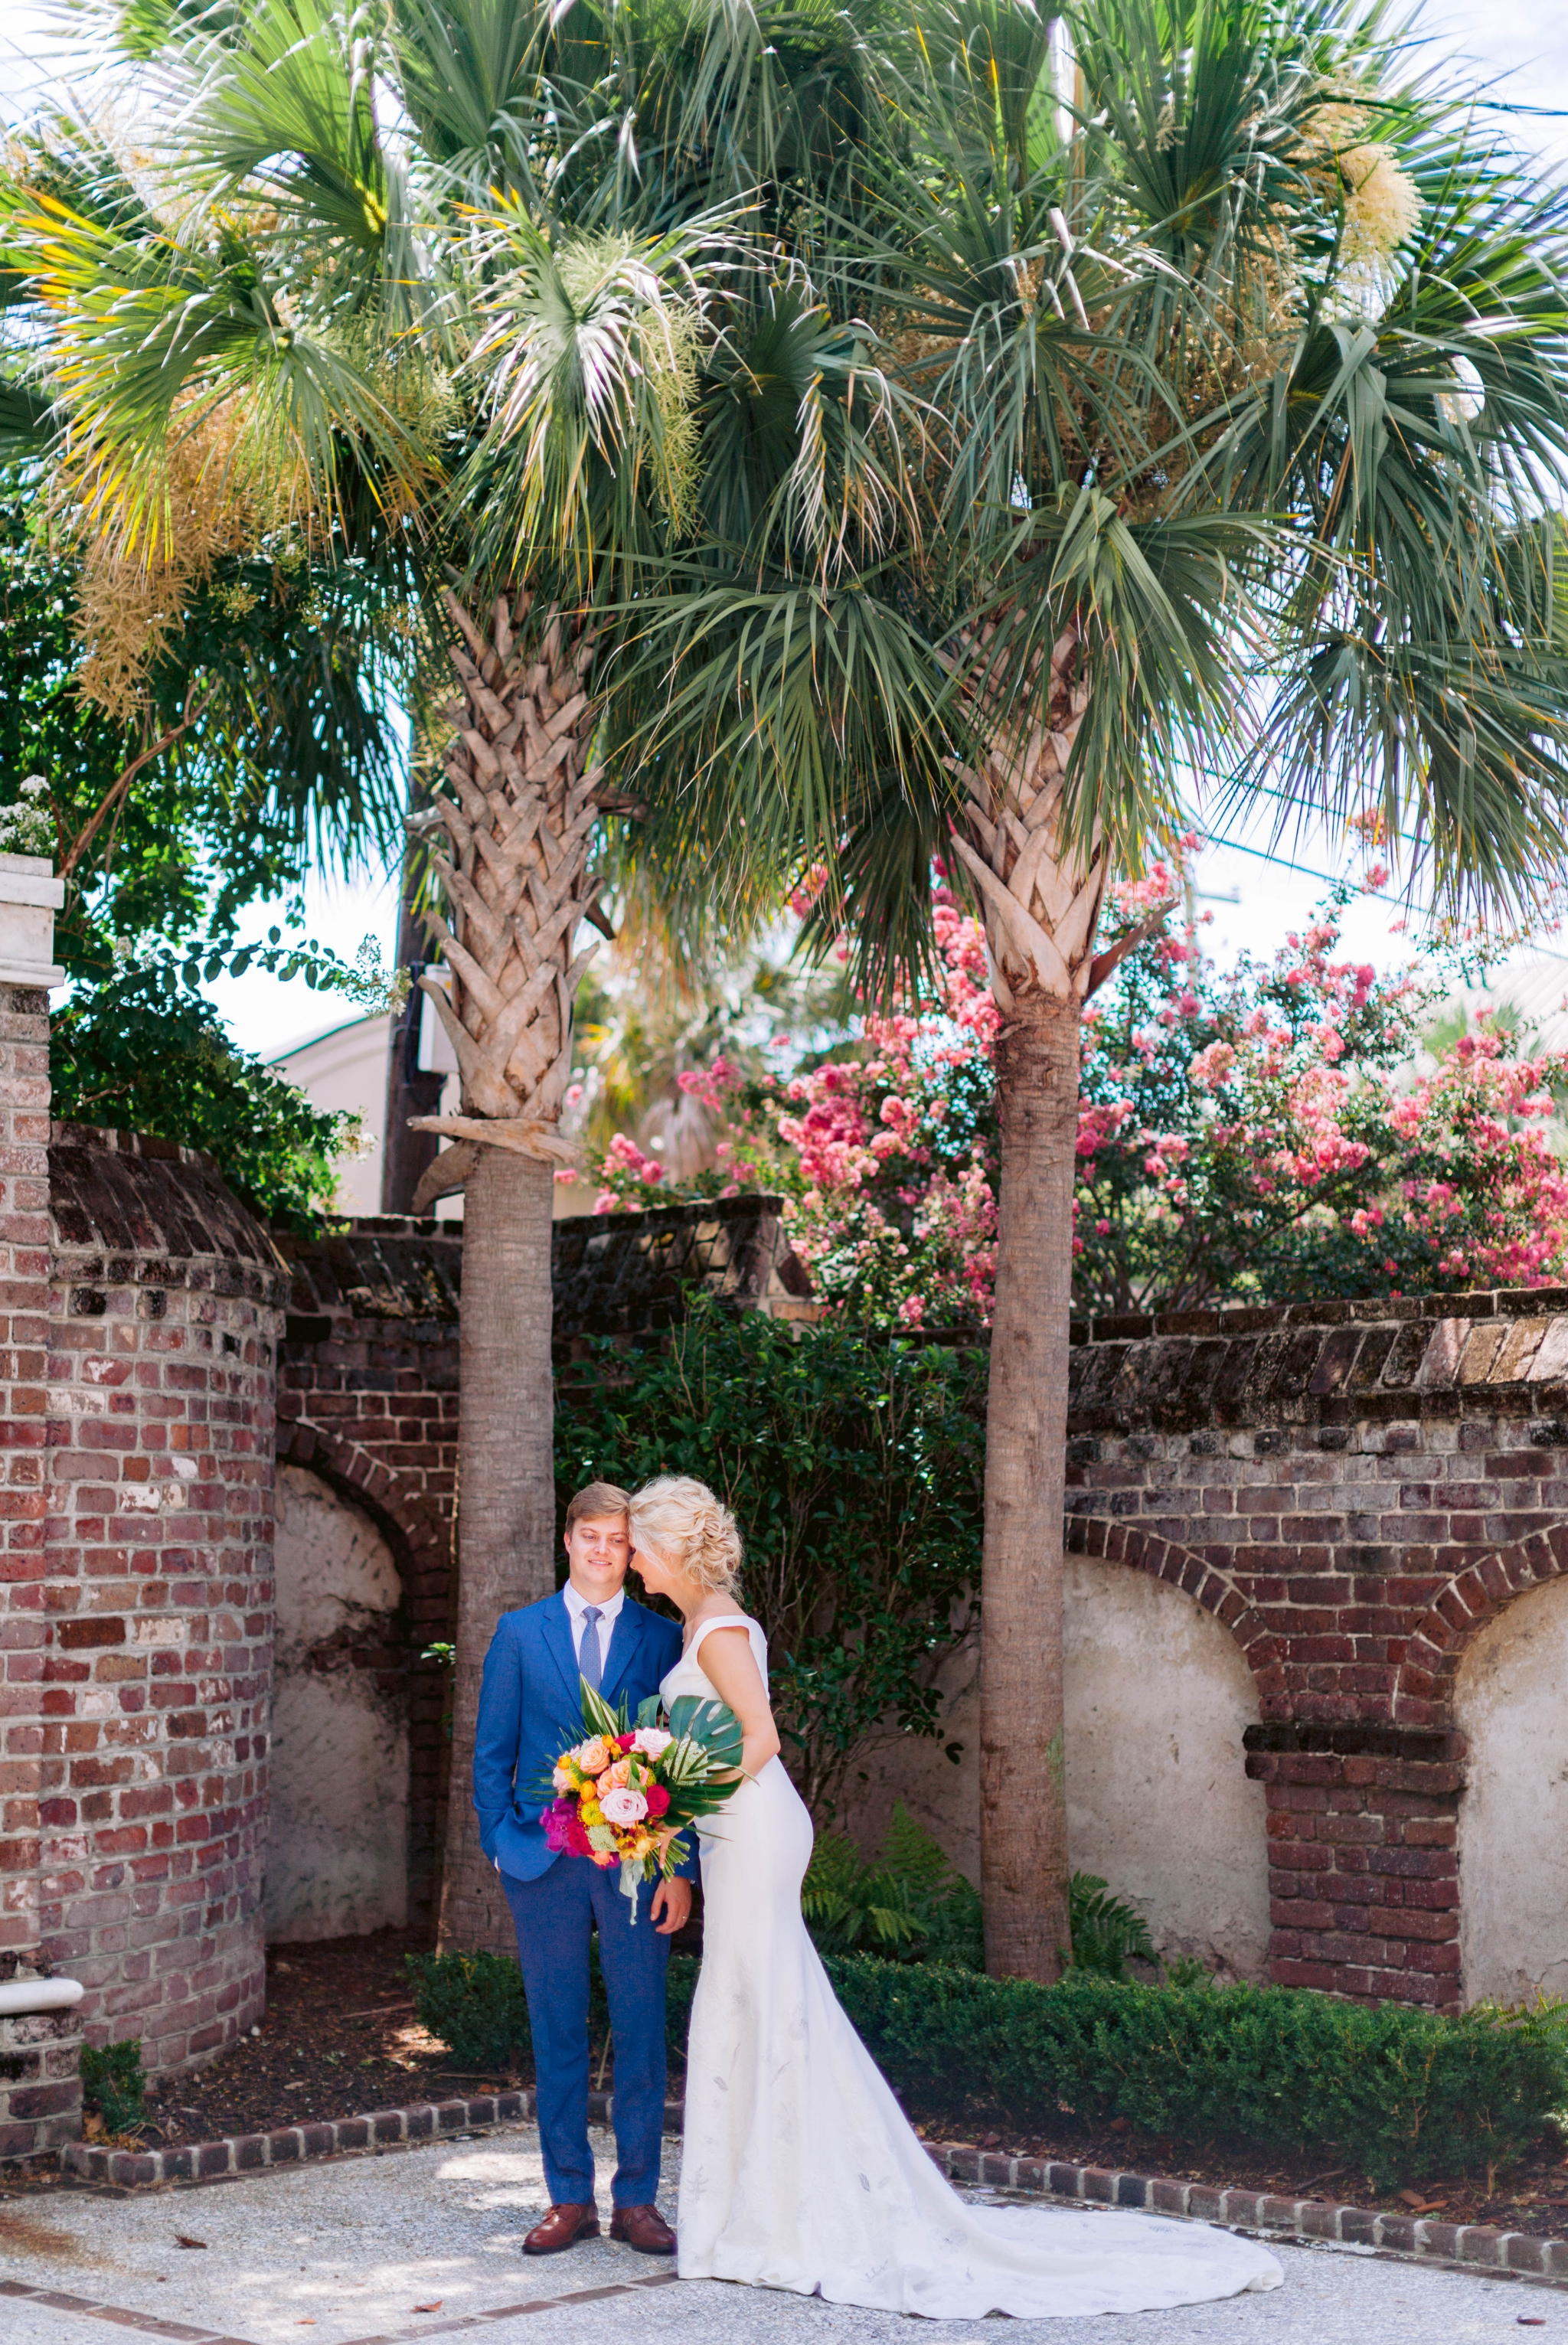 Bride and Groom Portraits with Industrial Brick and Palm Trees - Navy, Green, Gold and Berry colored Tropical Wedding Inspiration for your Wedding in Hawaii! - Honolulu, Oahu, Hawaii Photographer - Fine Art Film Photography - Light and Airy